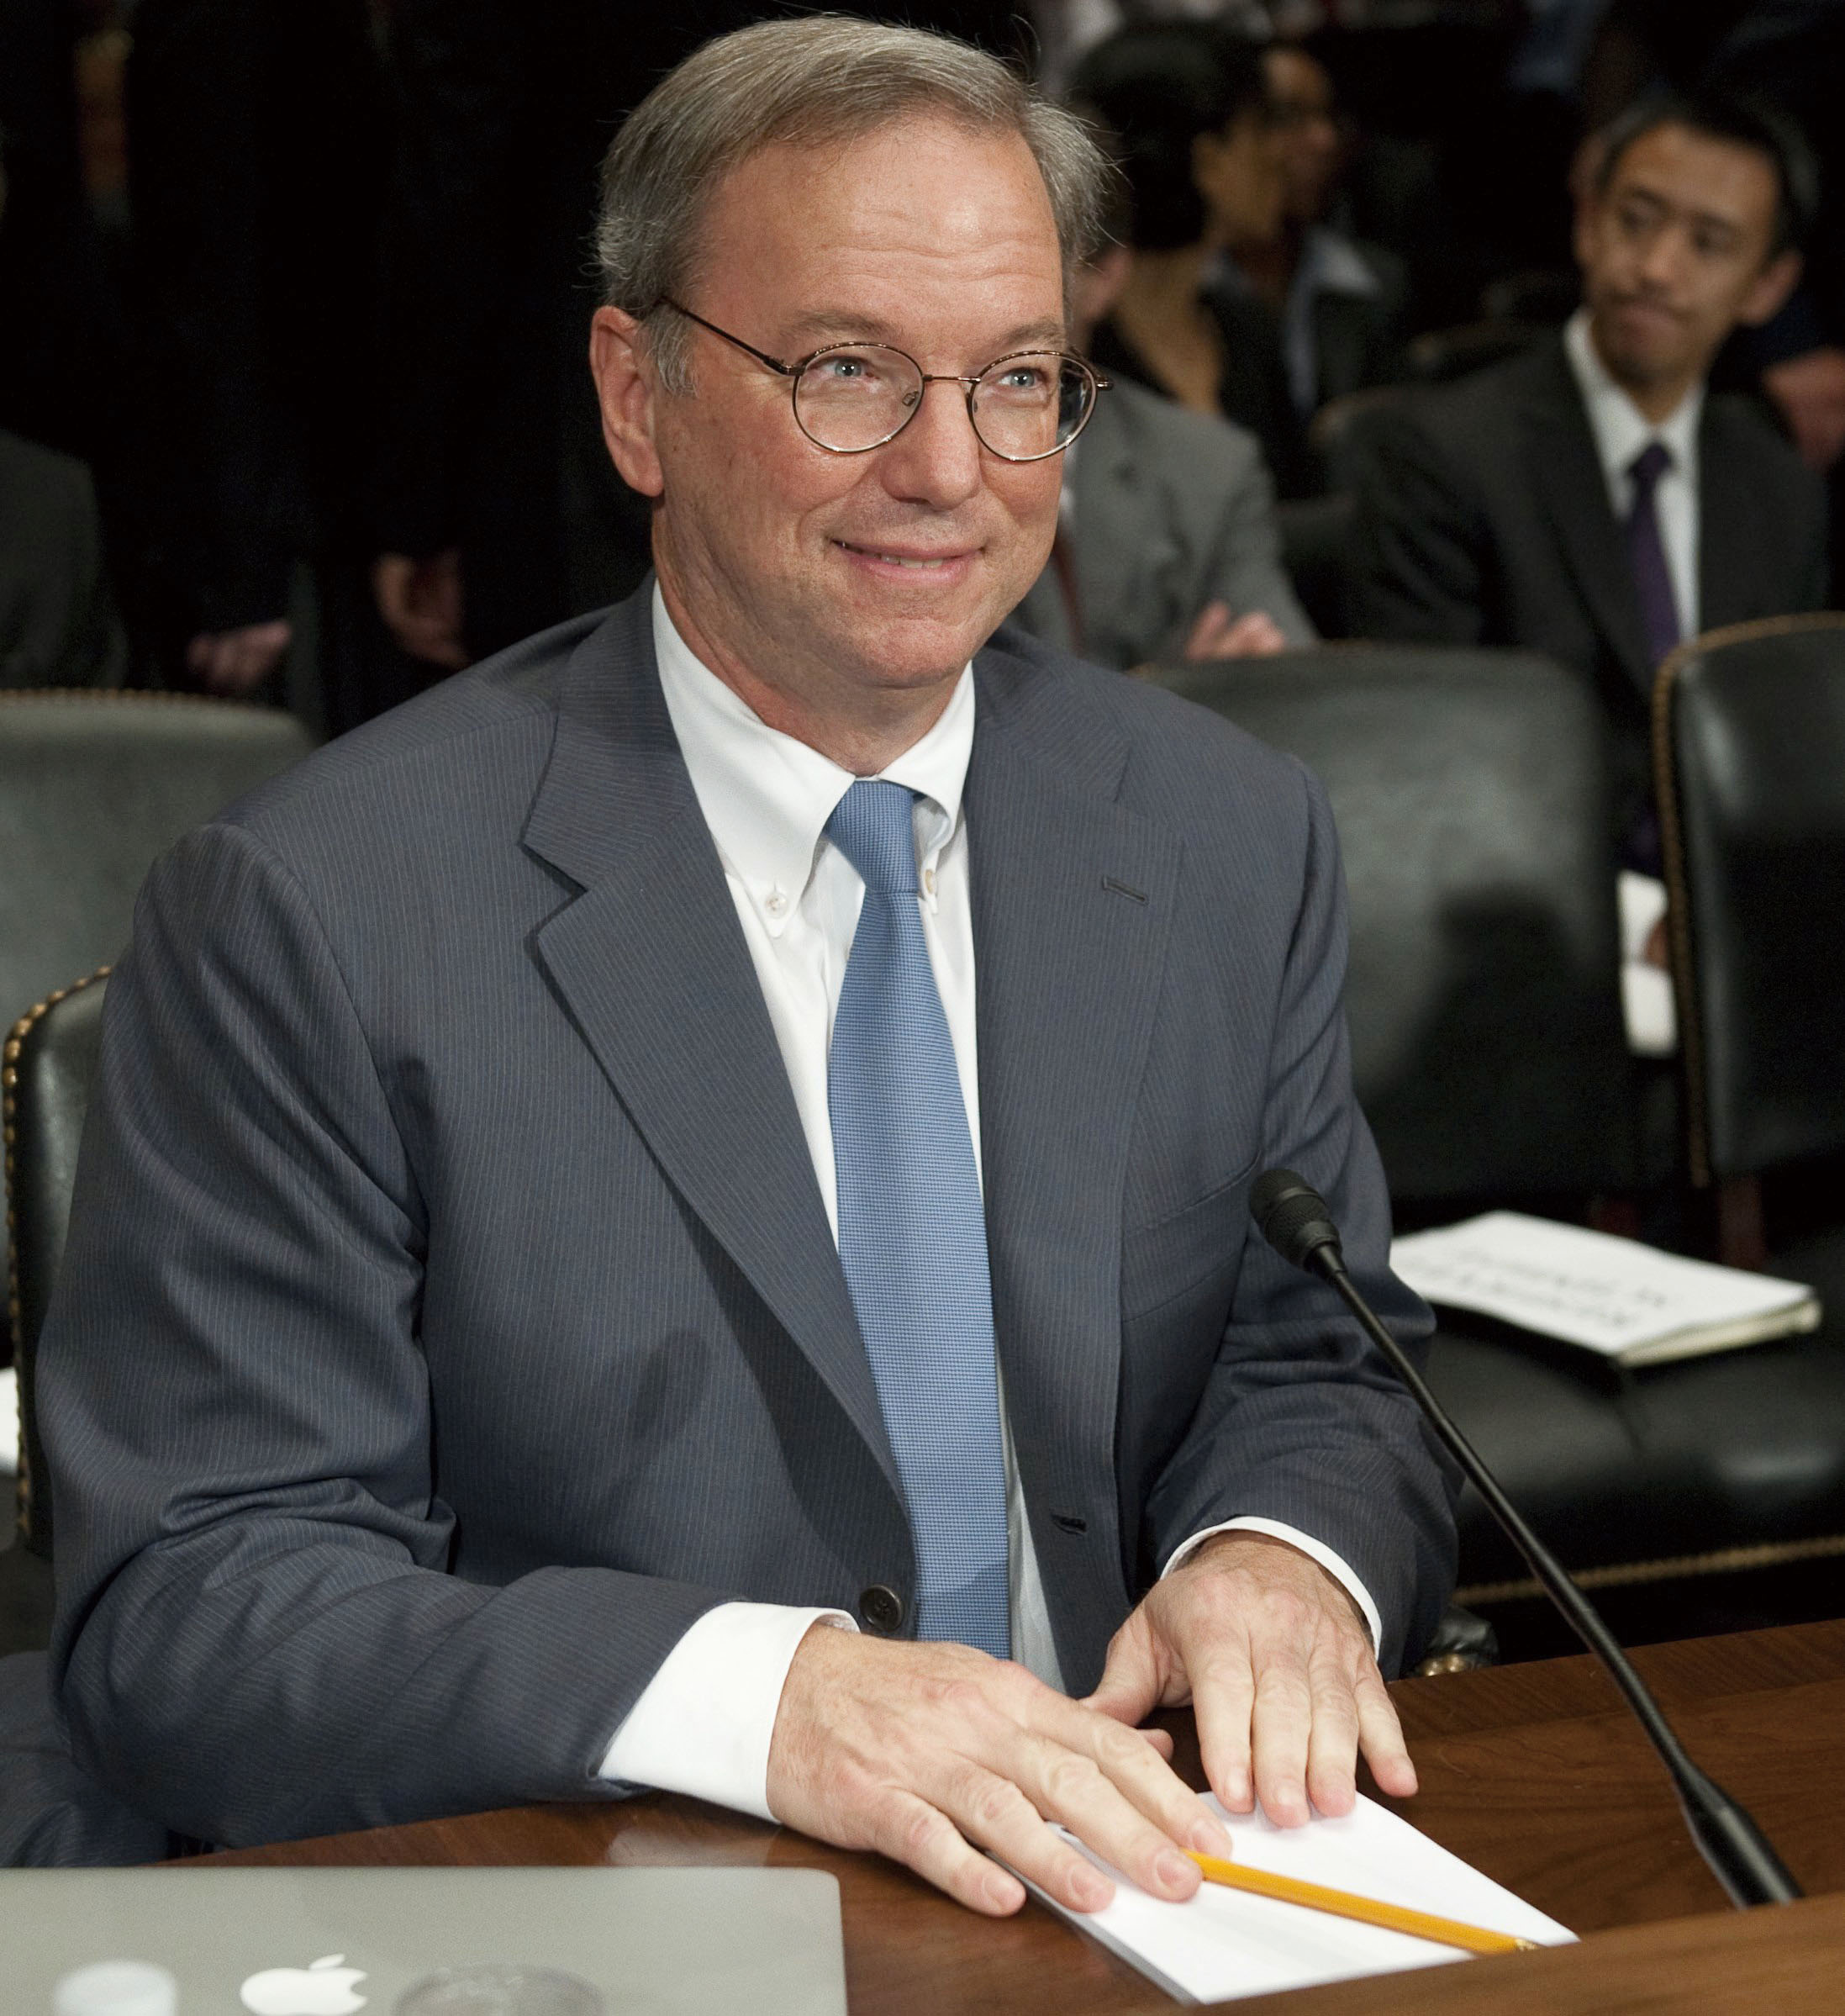 File photo shows Eric Schmidt, Chairman of Google, attends a hearing on Google's business and privacy practices on Capitol Hill in Washington, DC, Sep...